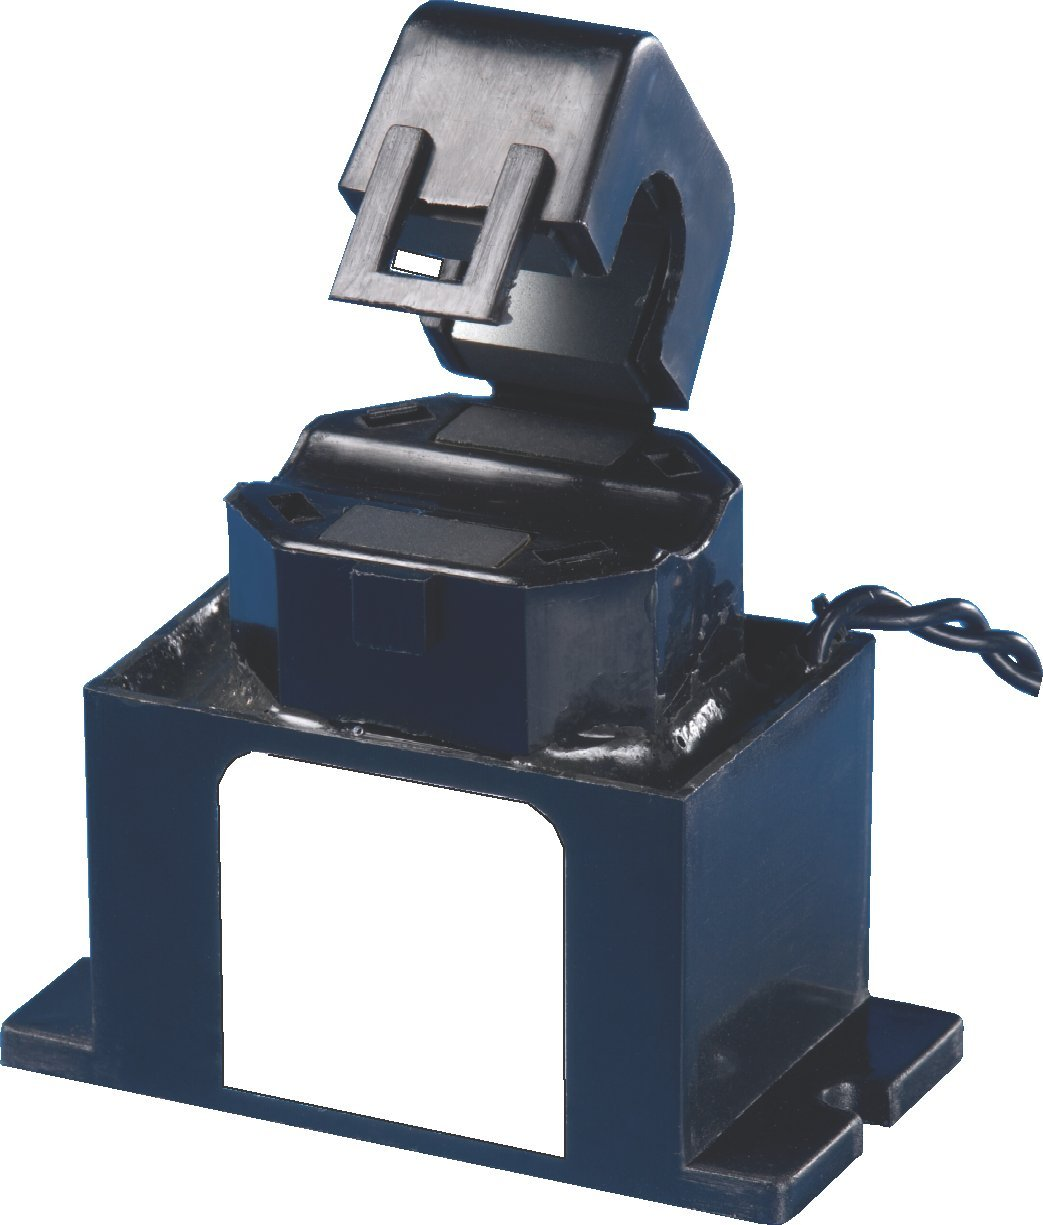 CR Magnetics CR9480-ACA-M AC Output Current Switch with Mounting Case, Normally Closed, 240 VAC RMS, 0.49'' Split Core